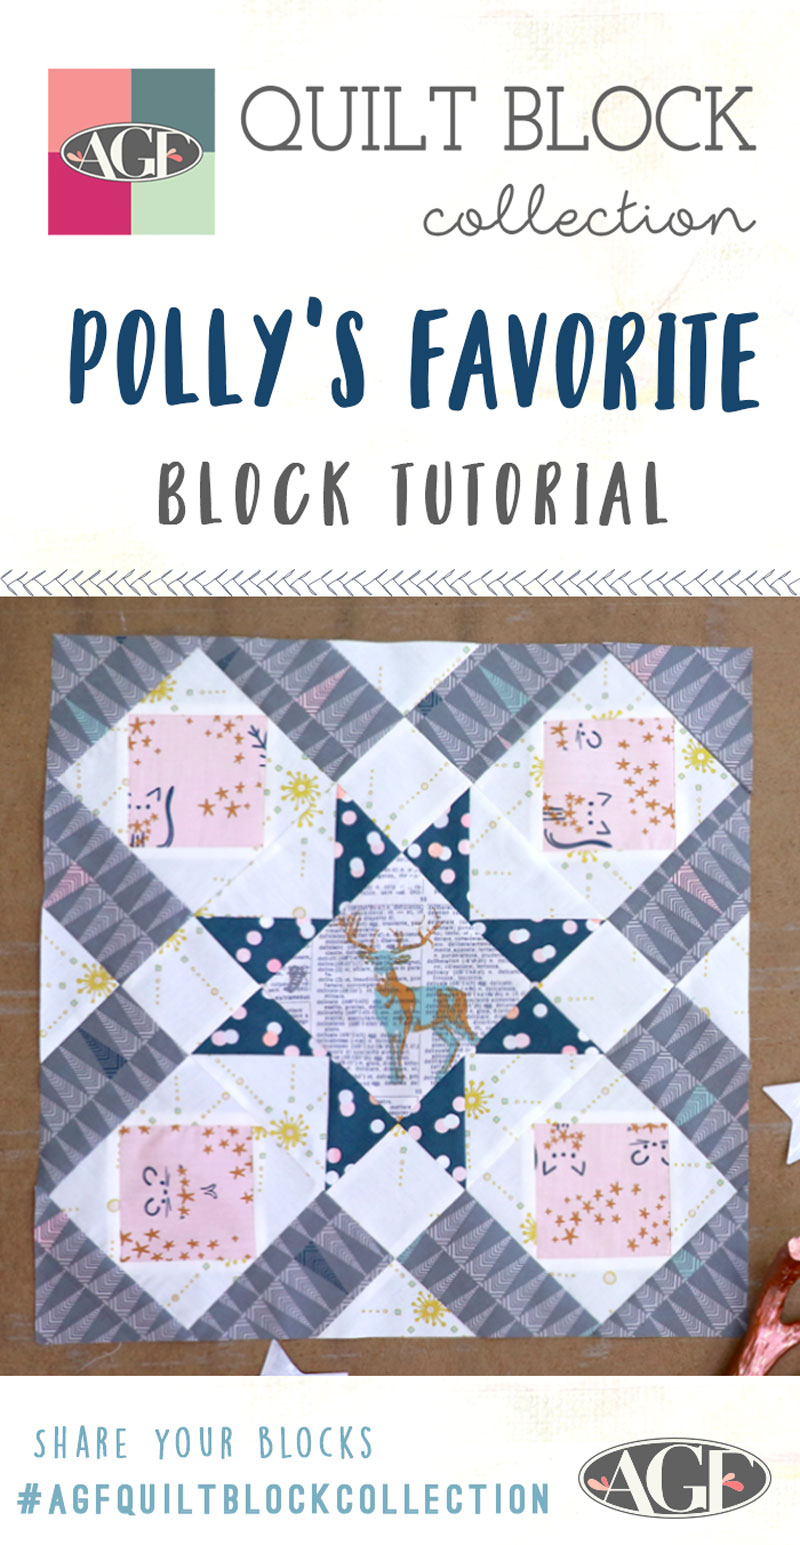 Polly's-Favorite-Block-Tutorial